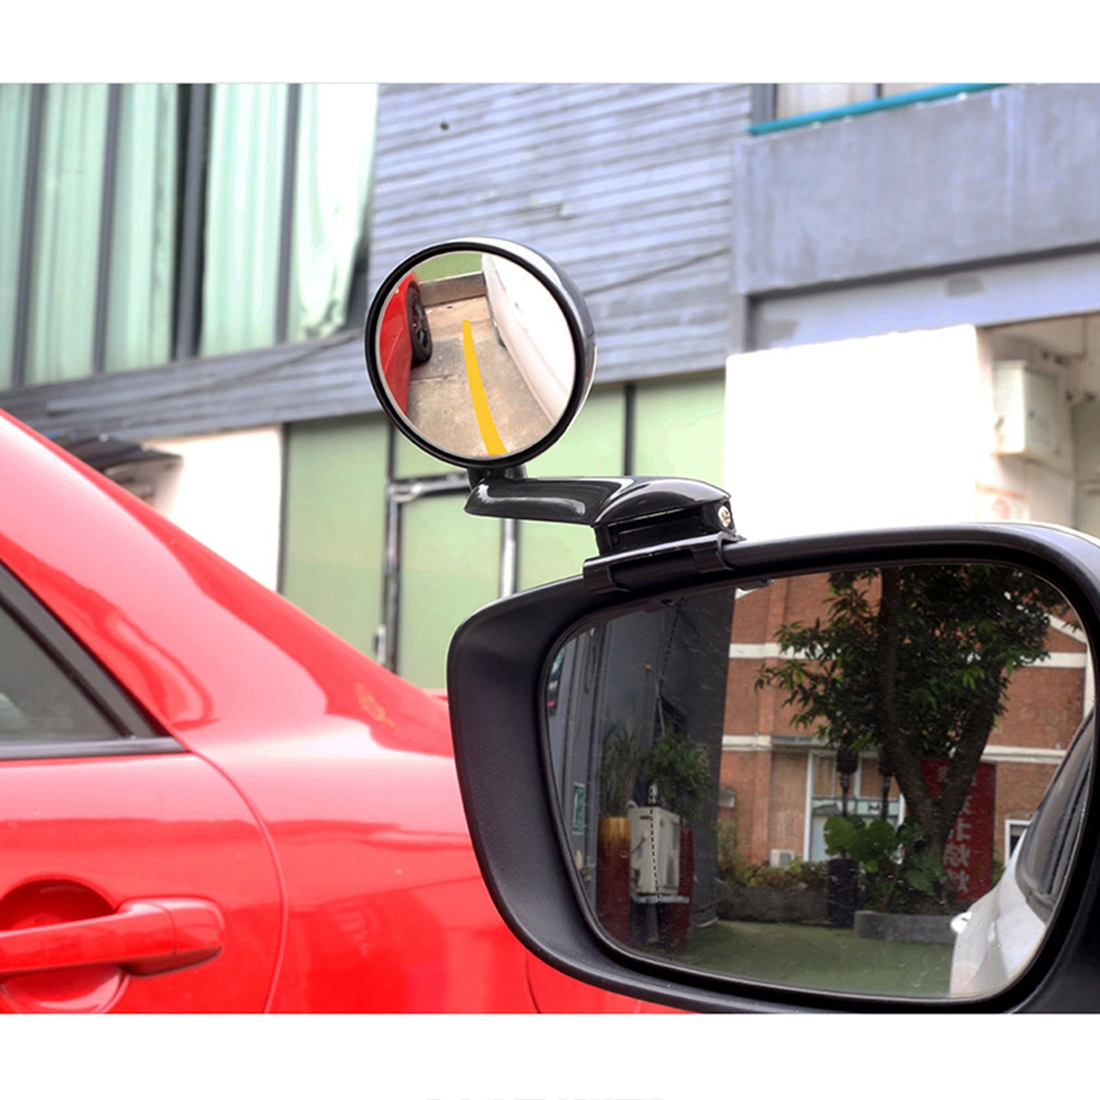 3R-094 Auxiliary Rear View Mirror Car Adjustable Blind Spot Mirror Wide Angle Auxiliary Rear View Side Mirror for Left Mirror